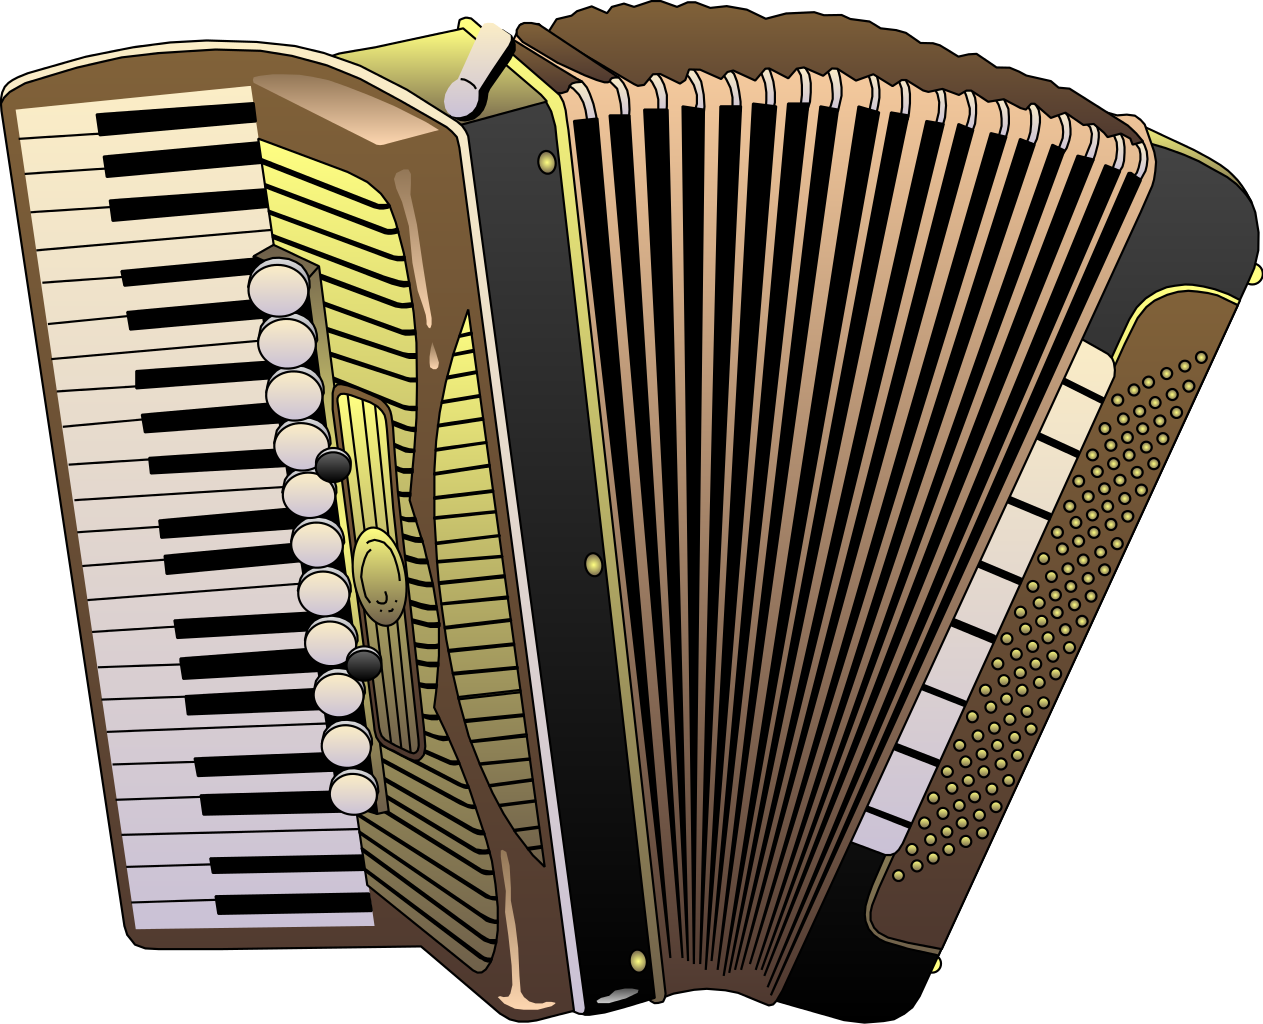 Simple Accordion Image Clipart Style Illustration 26662